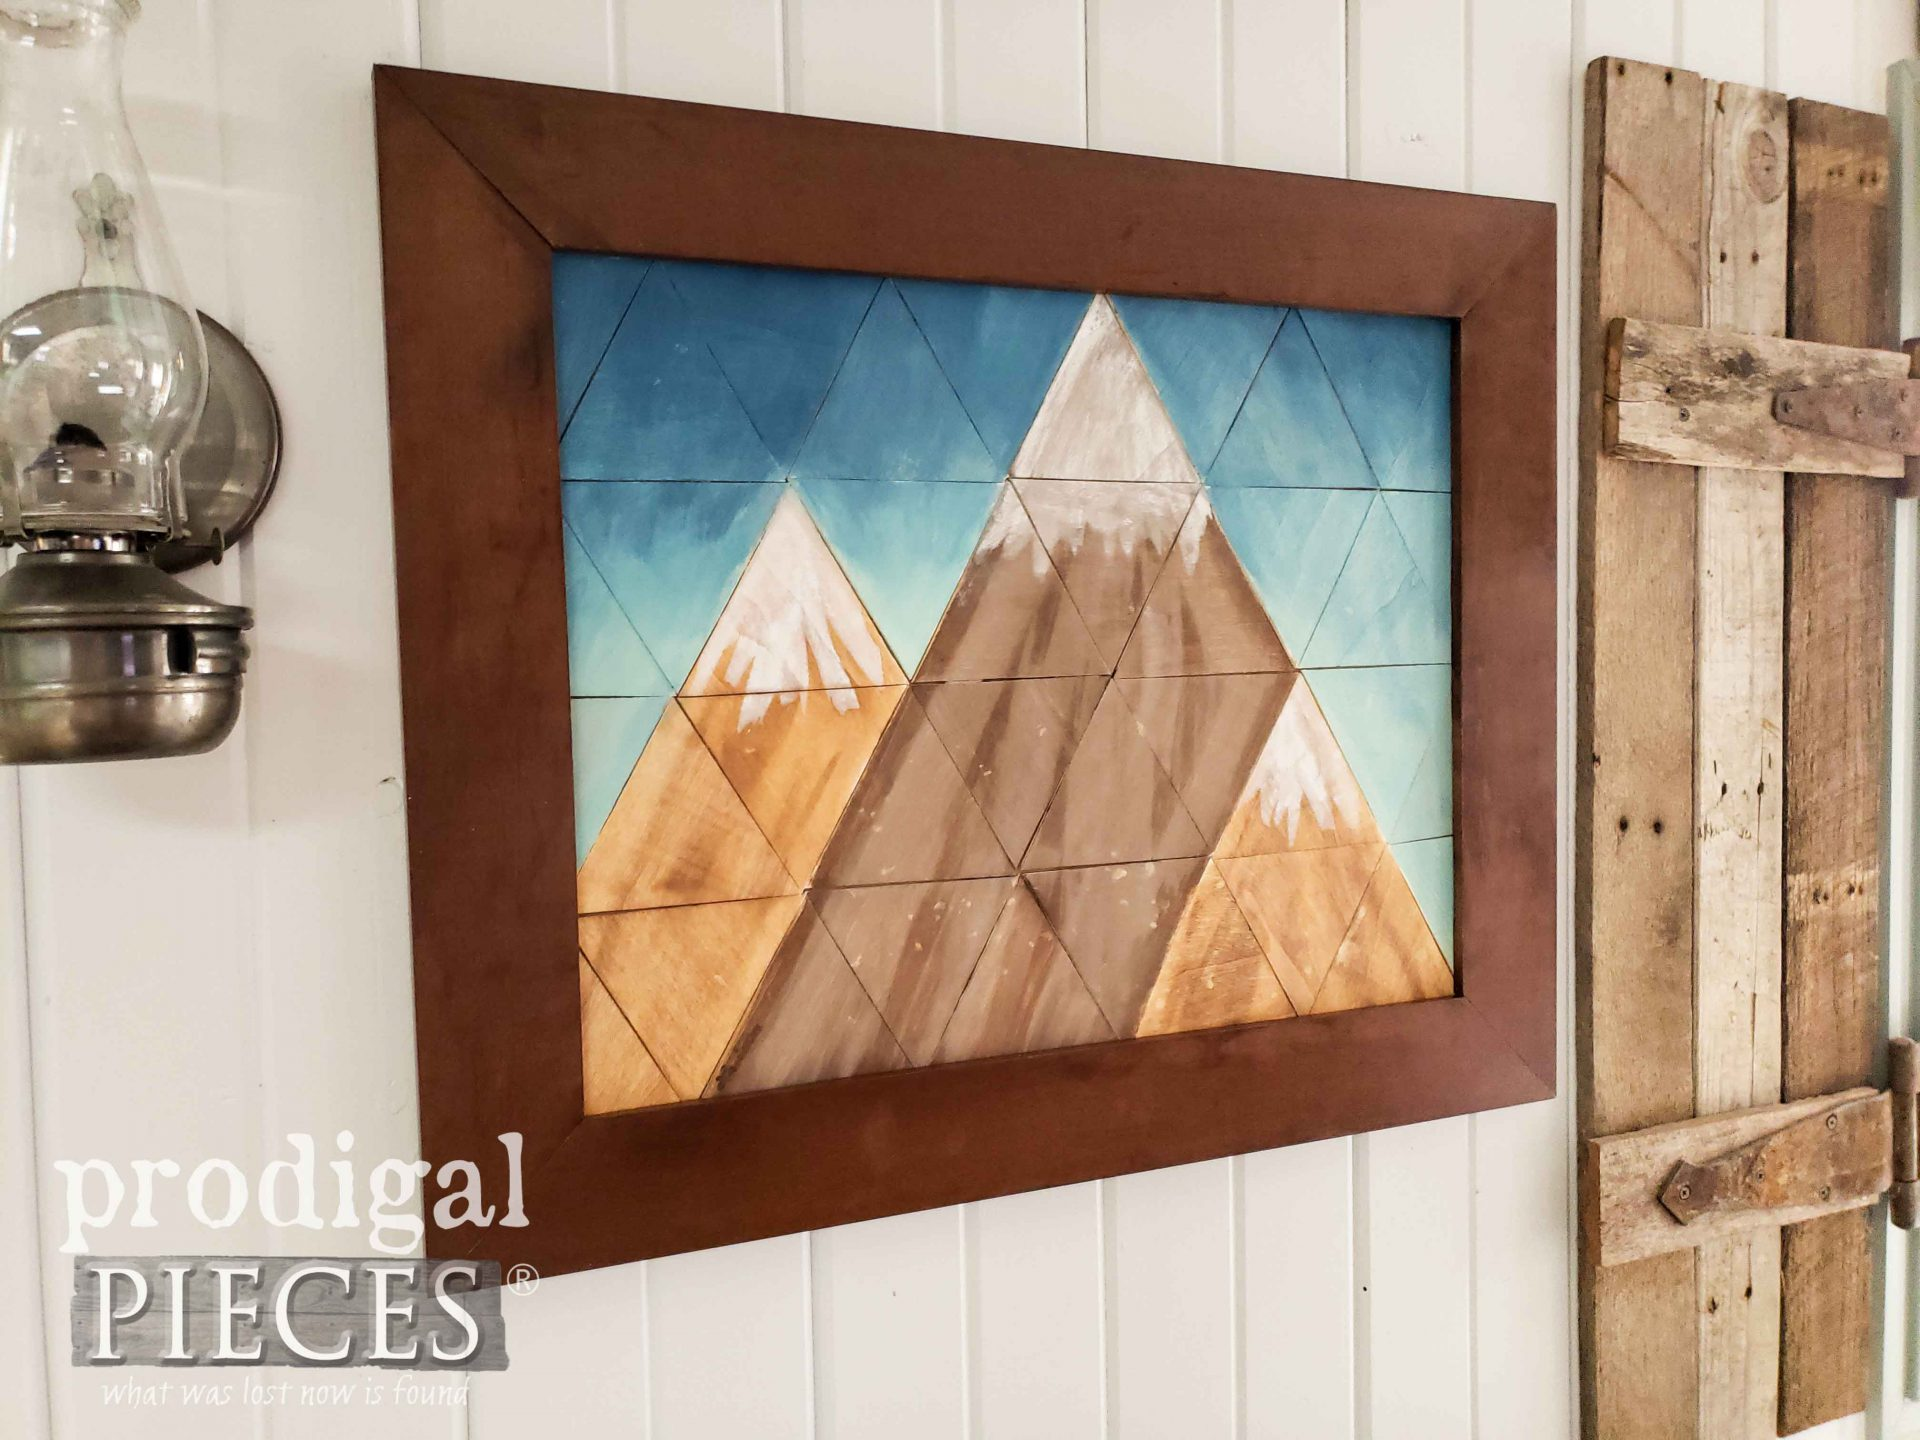 DIY Farmhouse Mountain Wall Art by Larissa of Prodigal Pieces | prodigalpieces.com #prodigalpieces #diy #farmhouse #home #art #homedecor